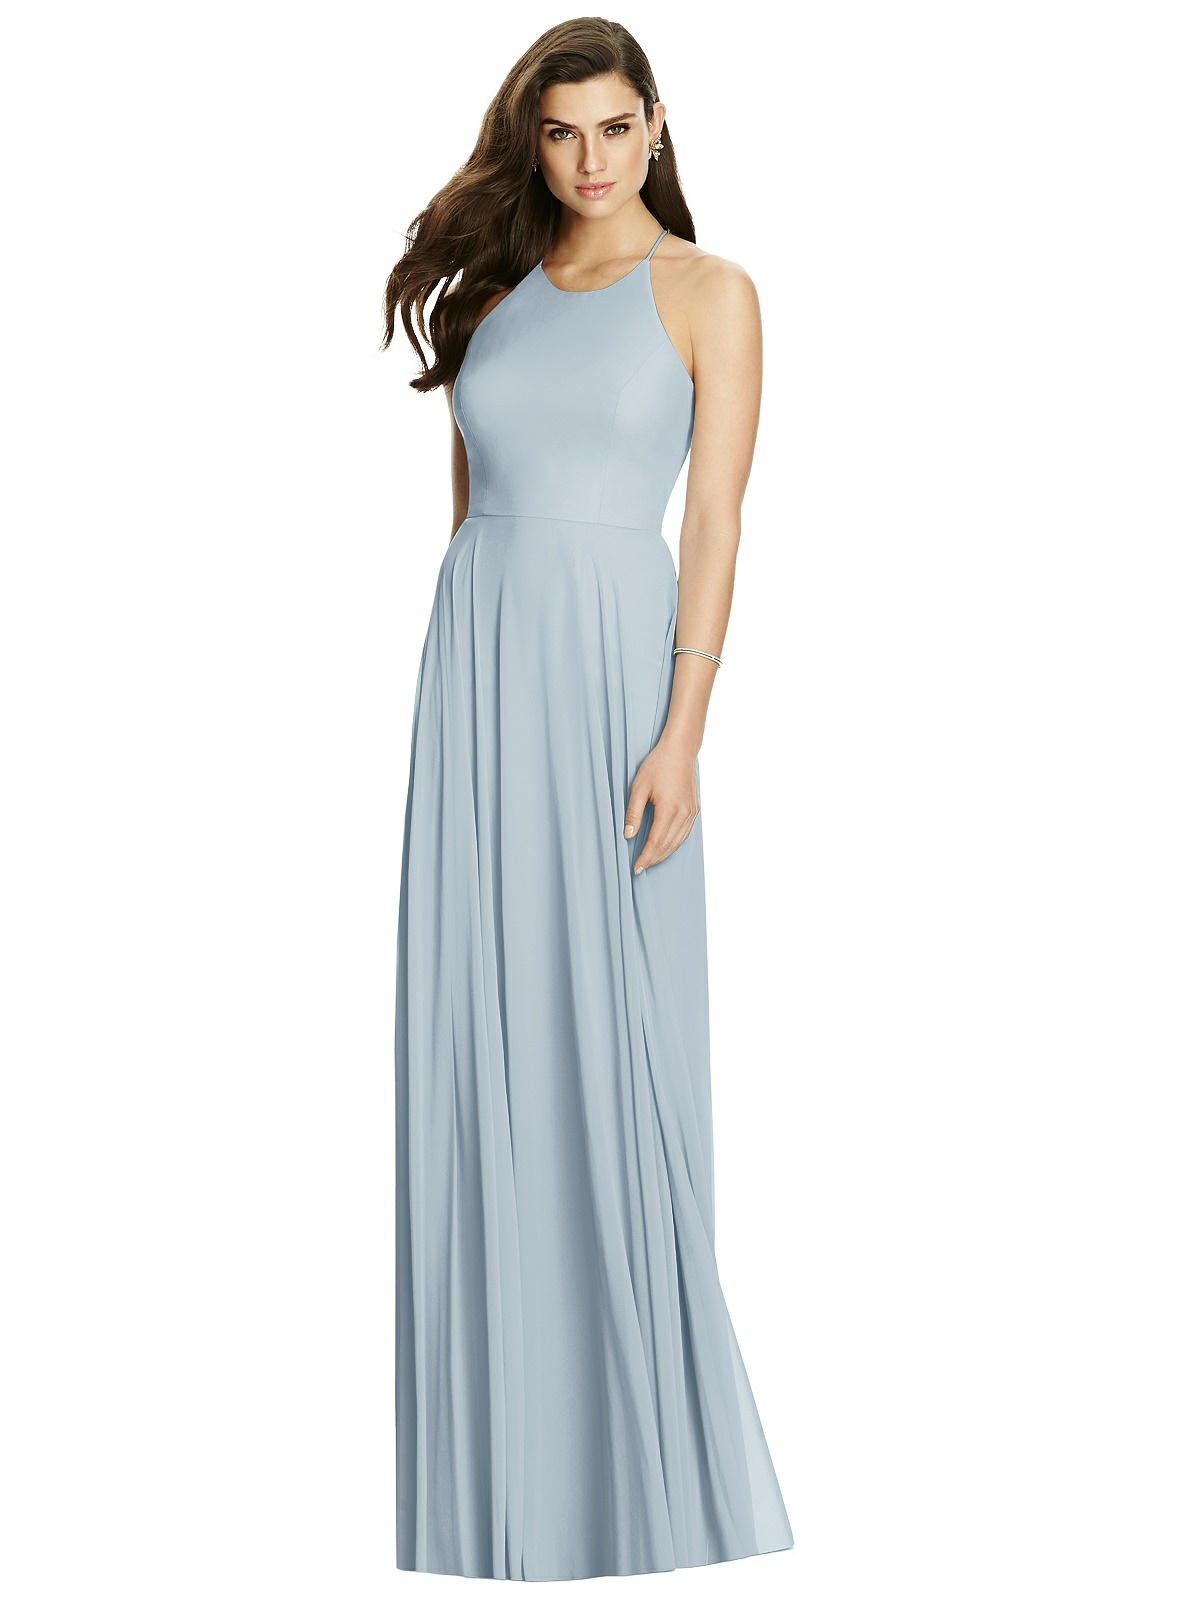 Dessy Bridesmaid Dress 2988 | The Dessy Group